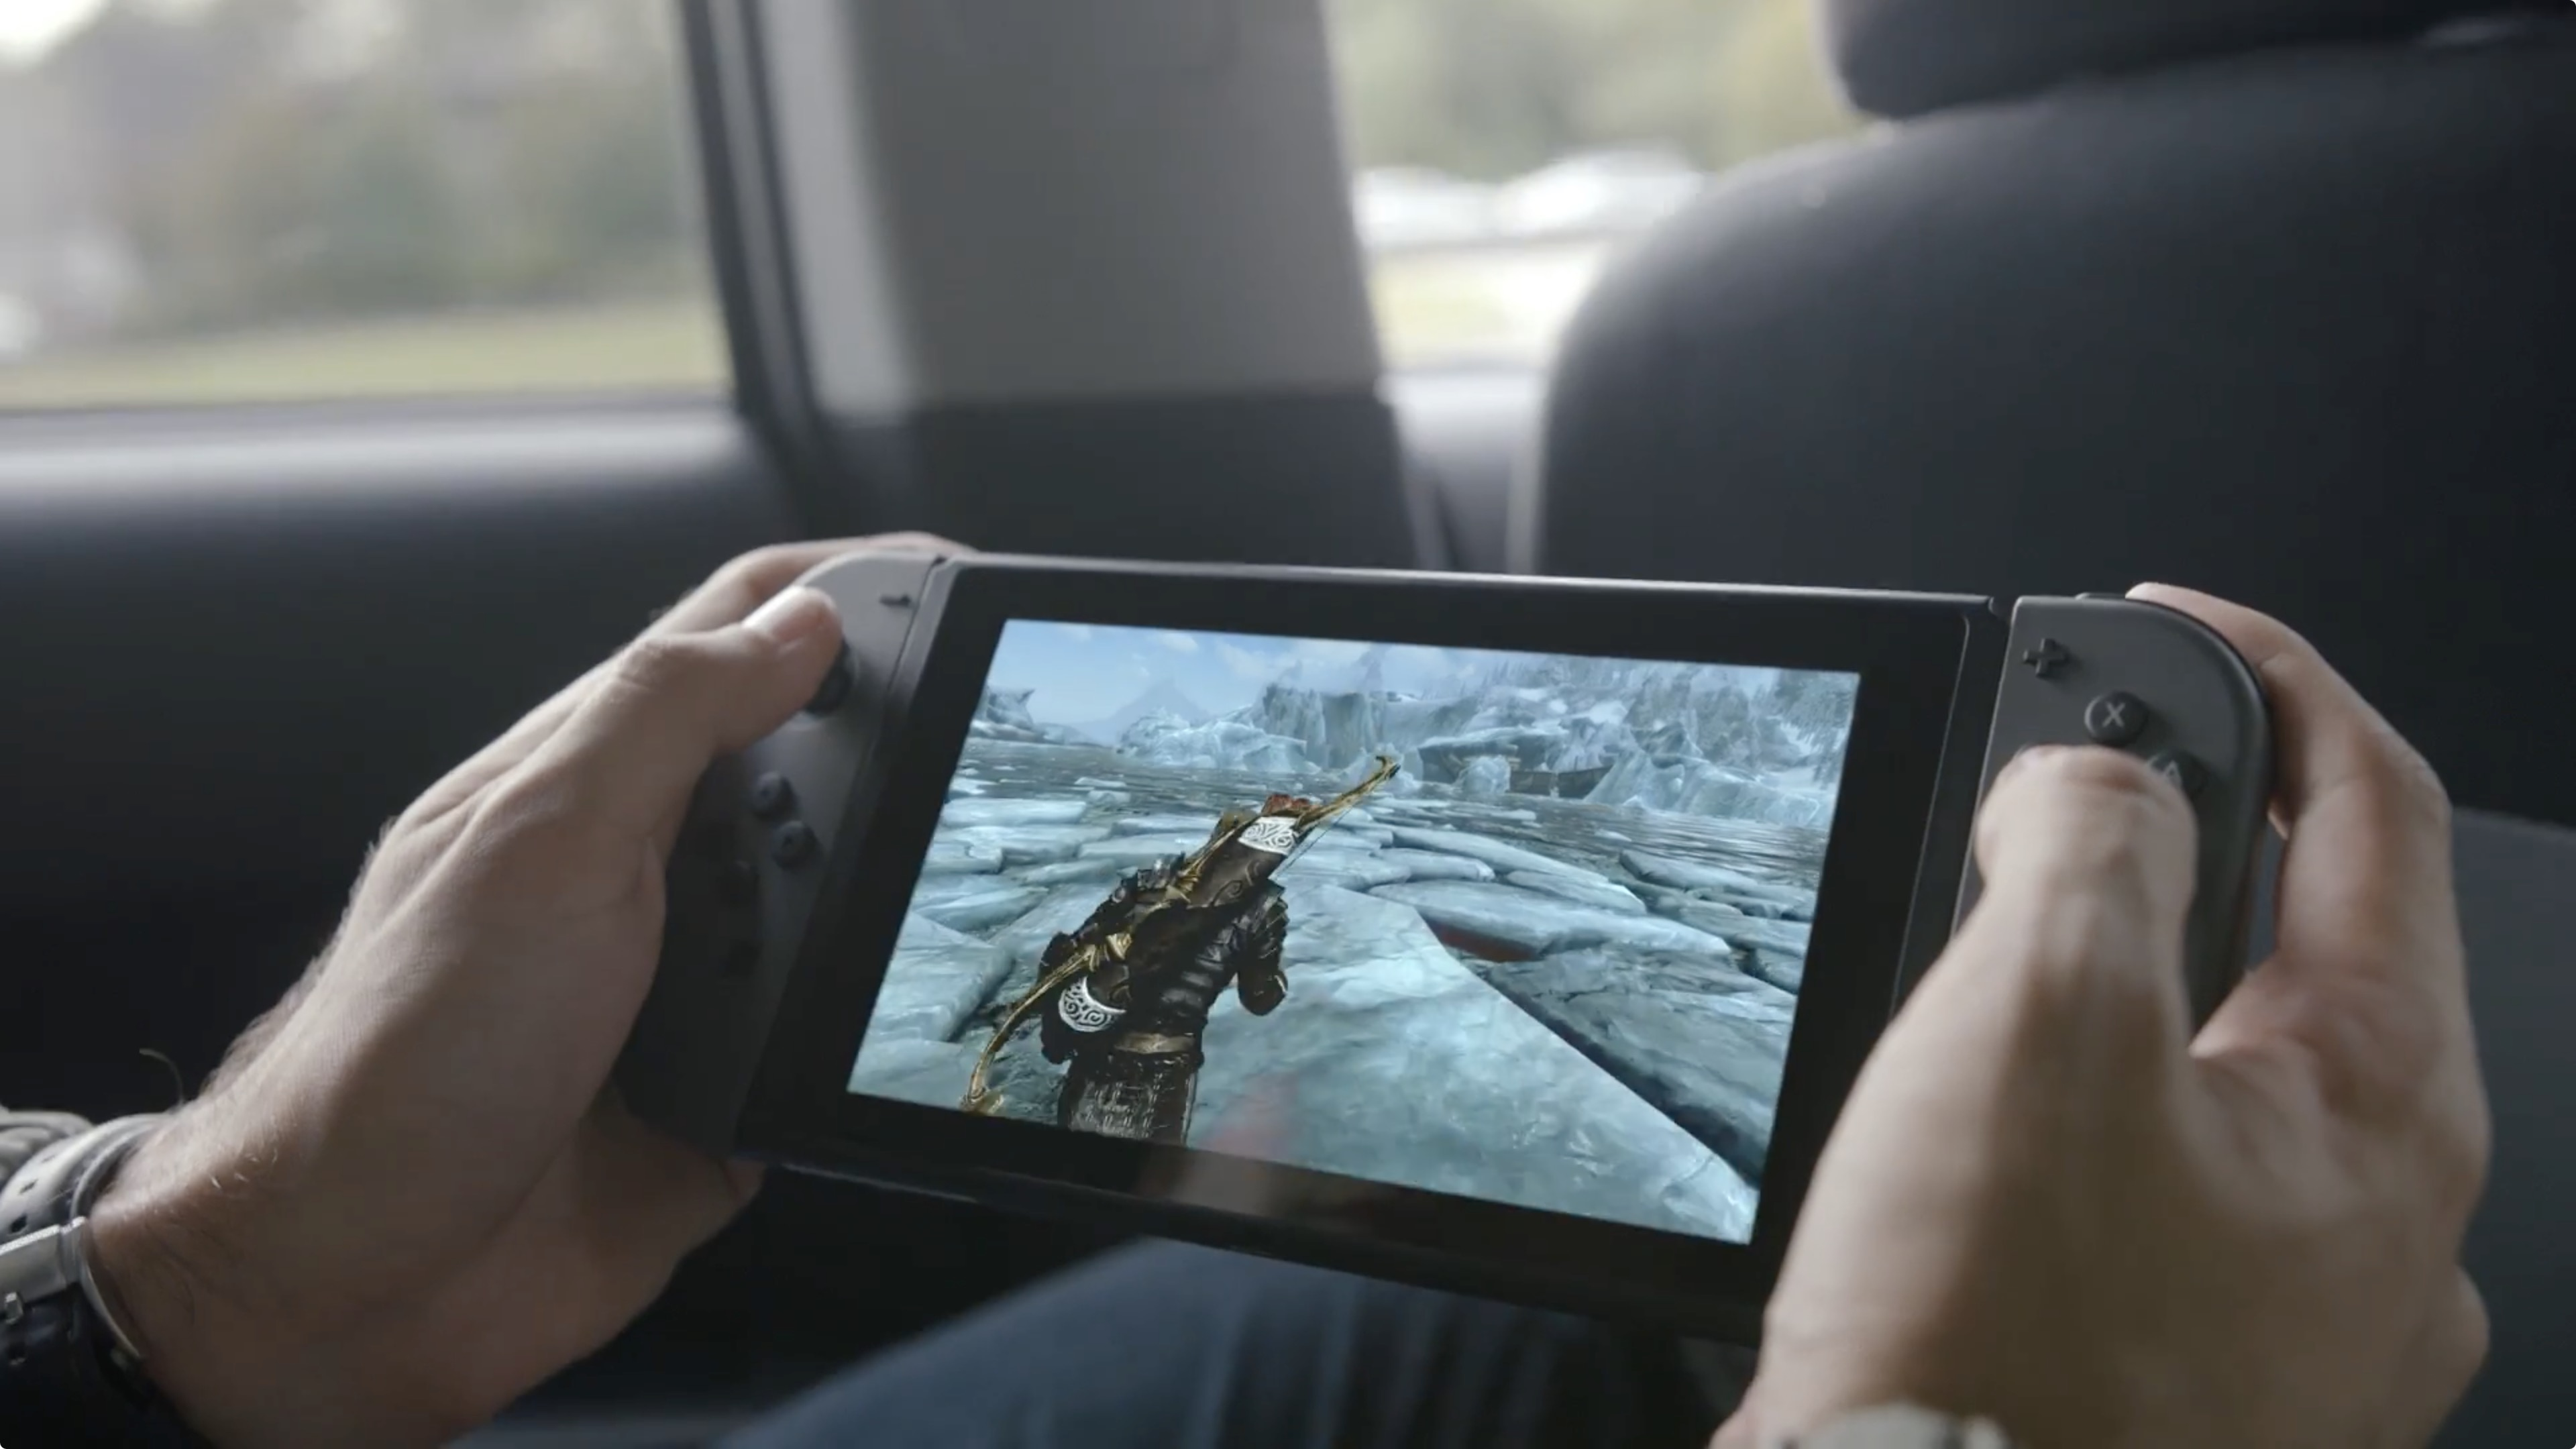 Nintendo Switch NX portable